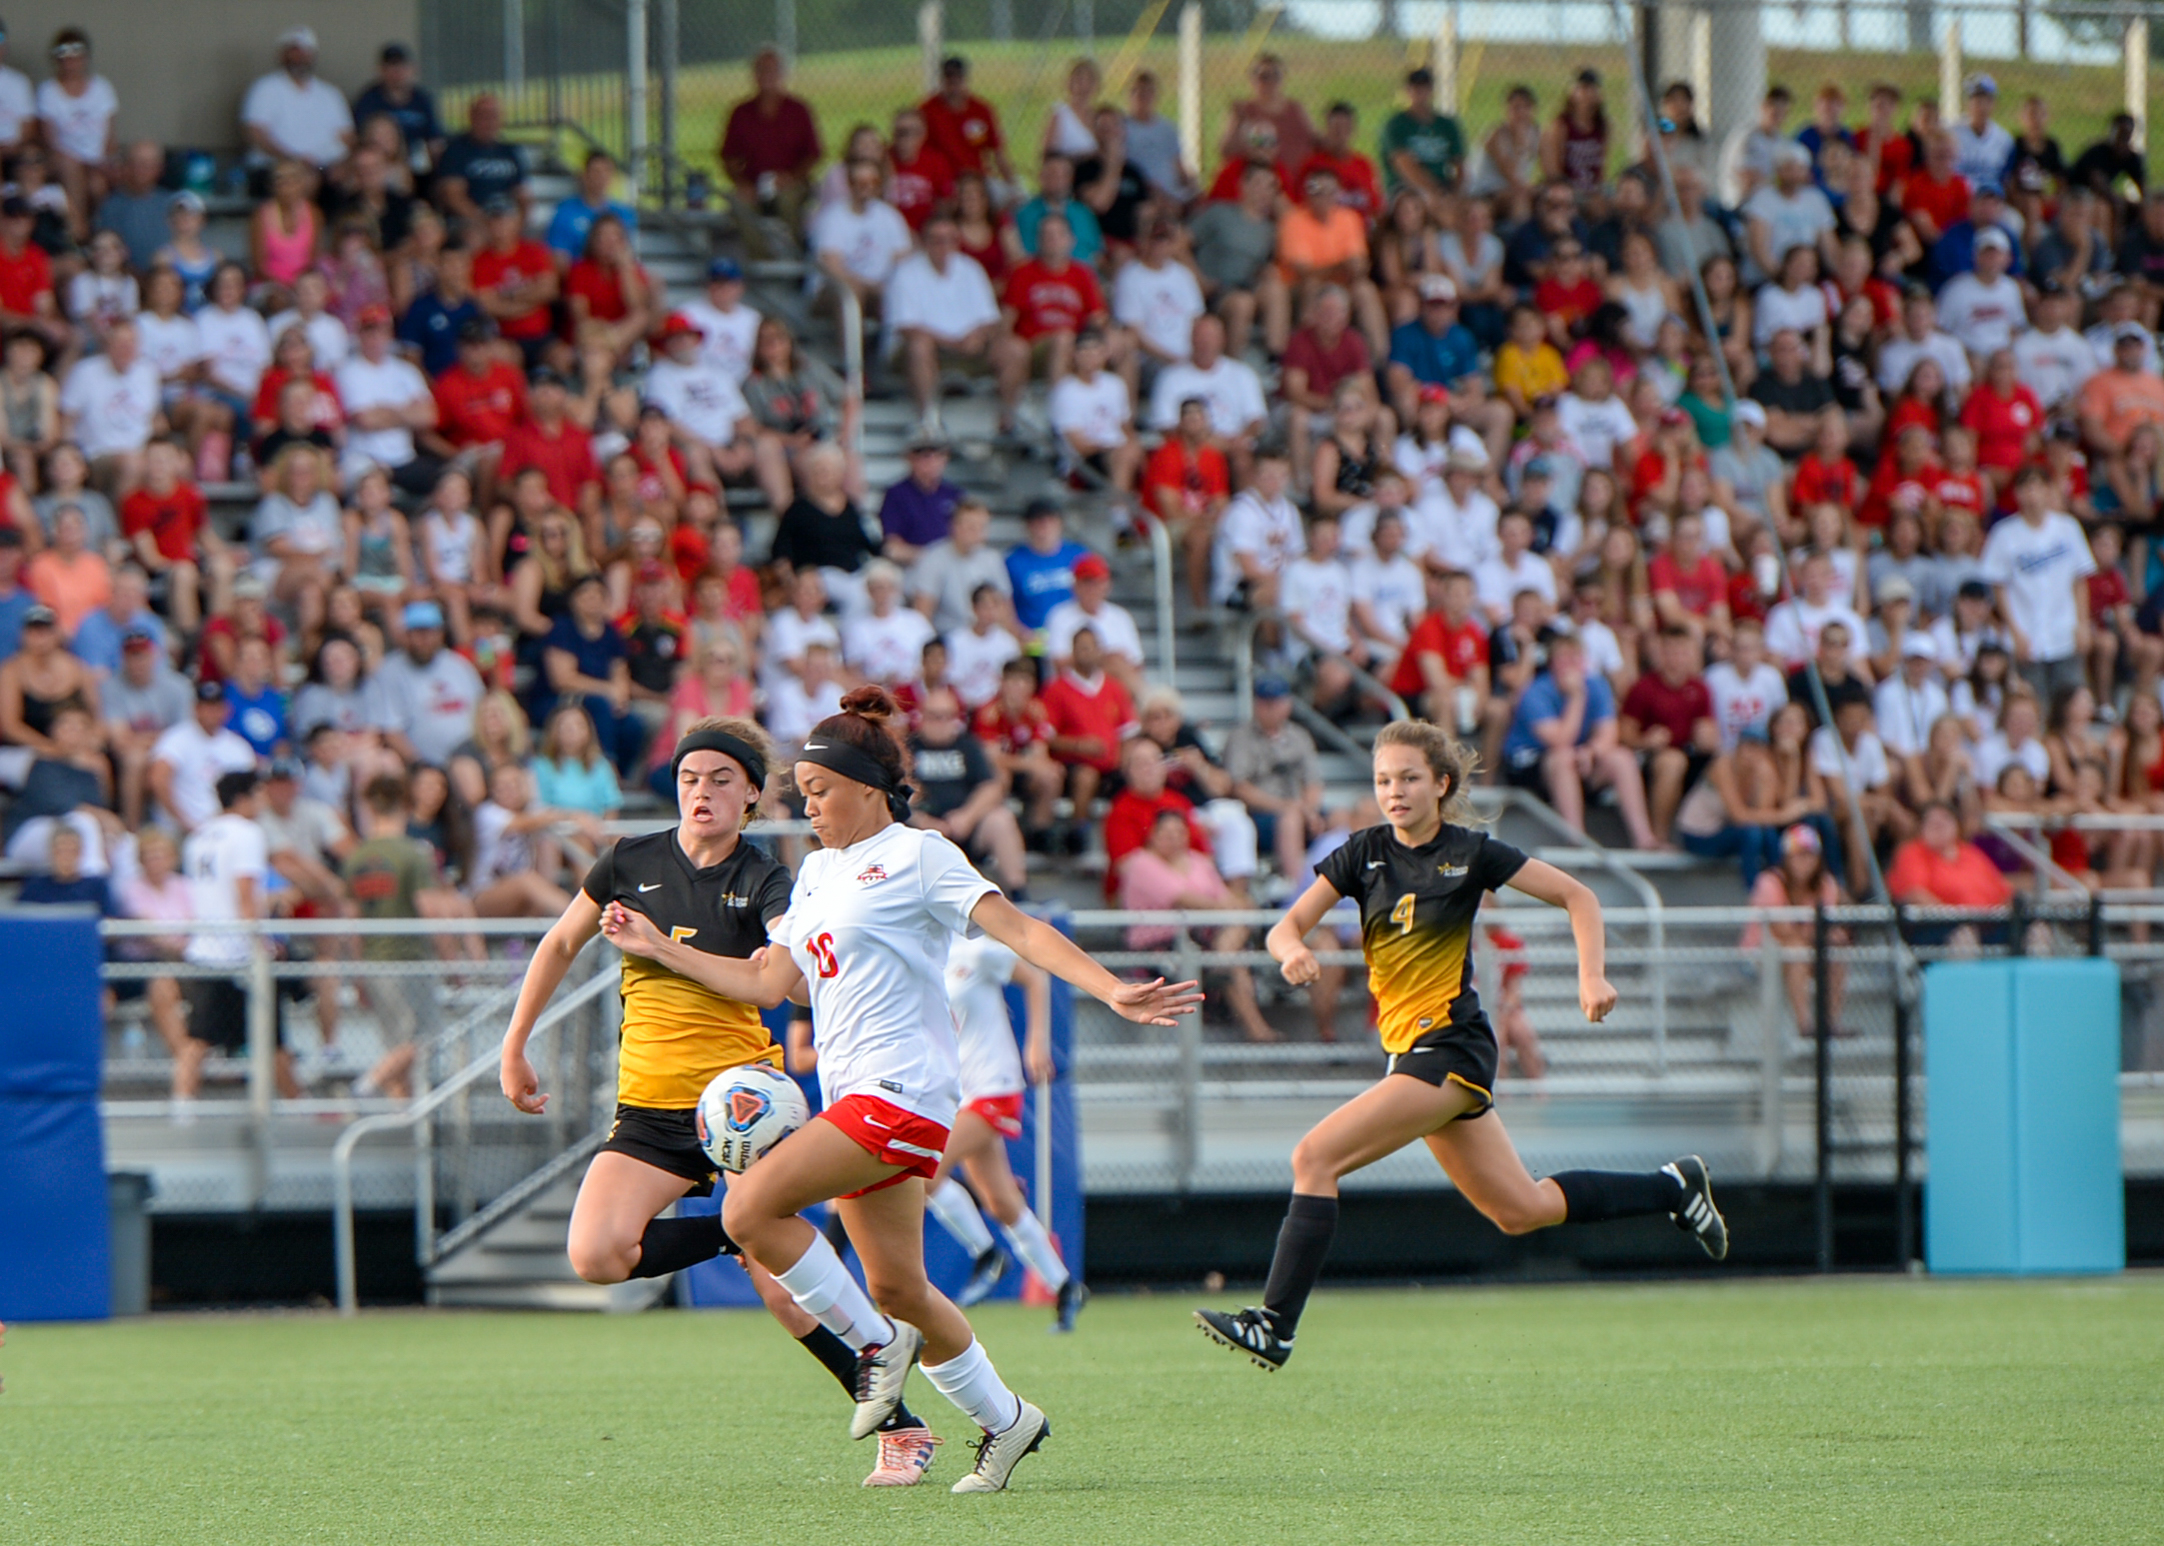 TODD NUGENT/Special to the Citizen Park Hill's Alyssa Ramos, right, battles for possession of the ball in during a Class 4 quarterfinal game held Saturday, May 26 at the Park Hill District Soccer Complex in Riverside, Mo.